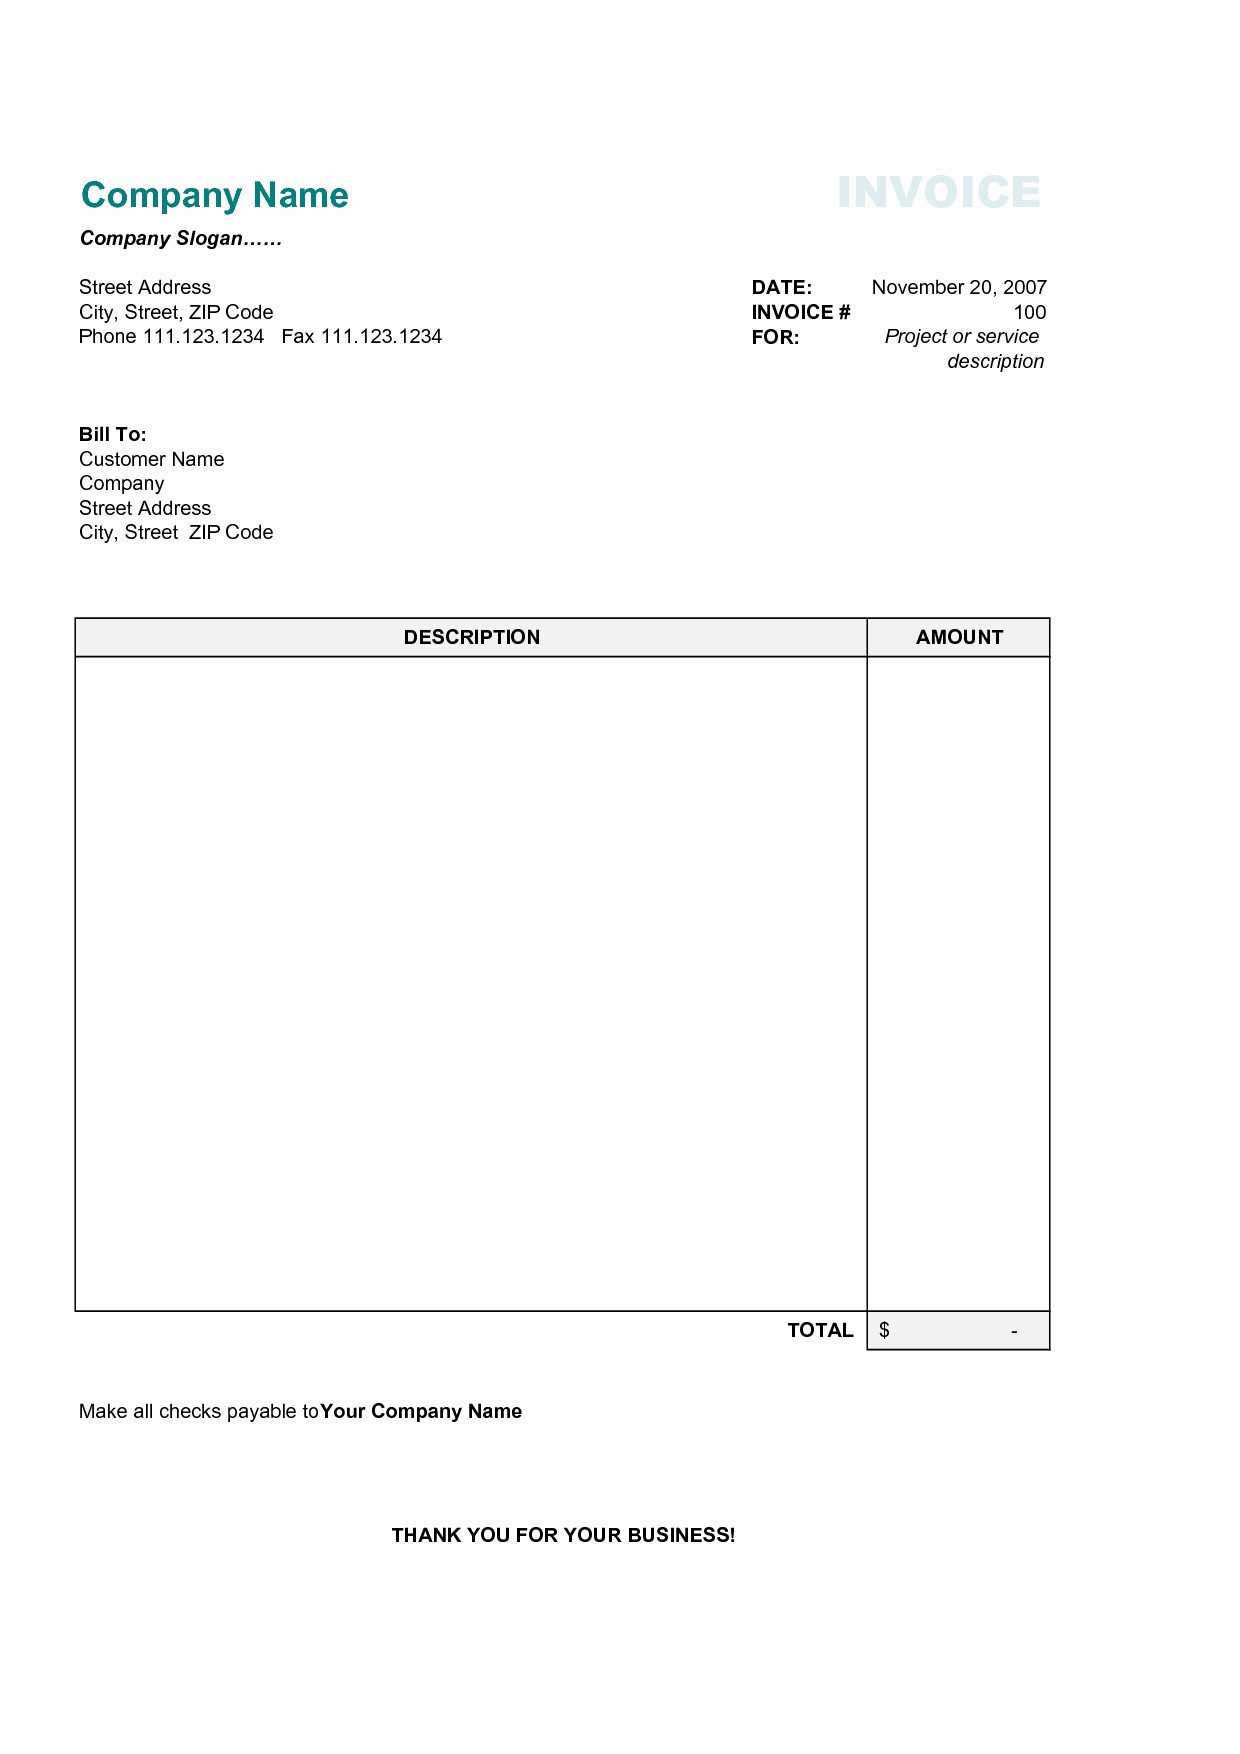 Invoice Template Word Download Free Fresh Simple Invoice Template